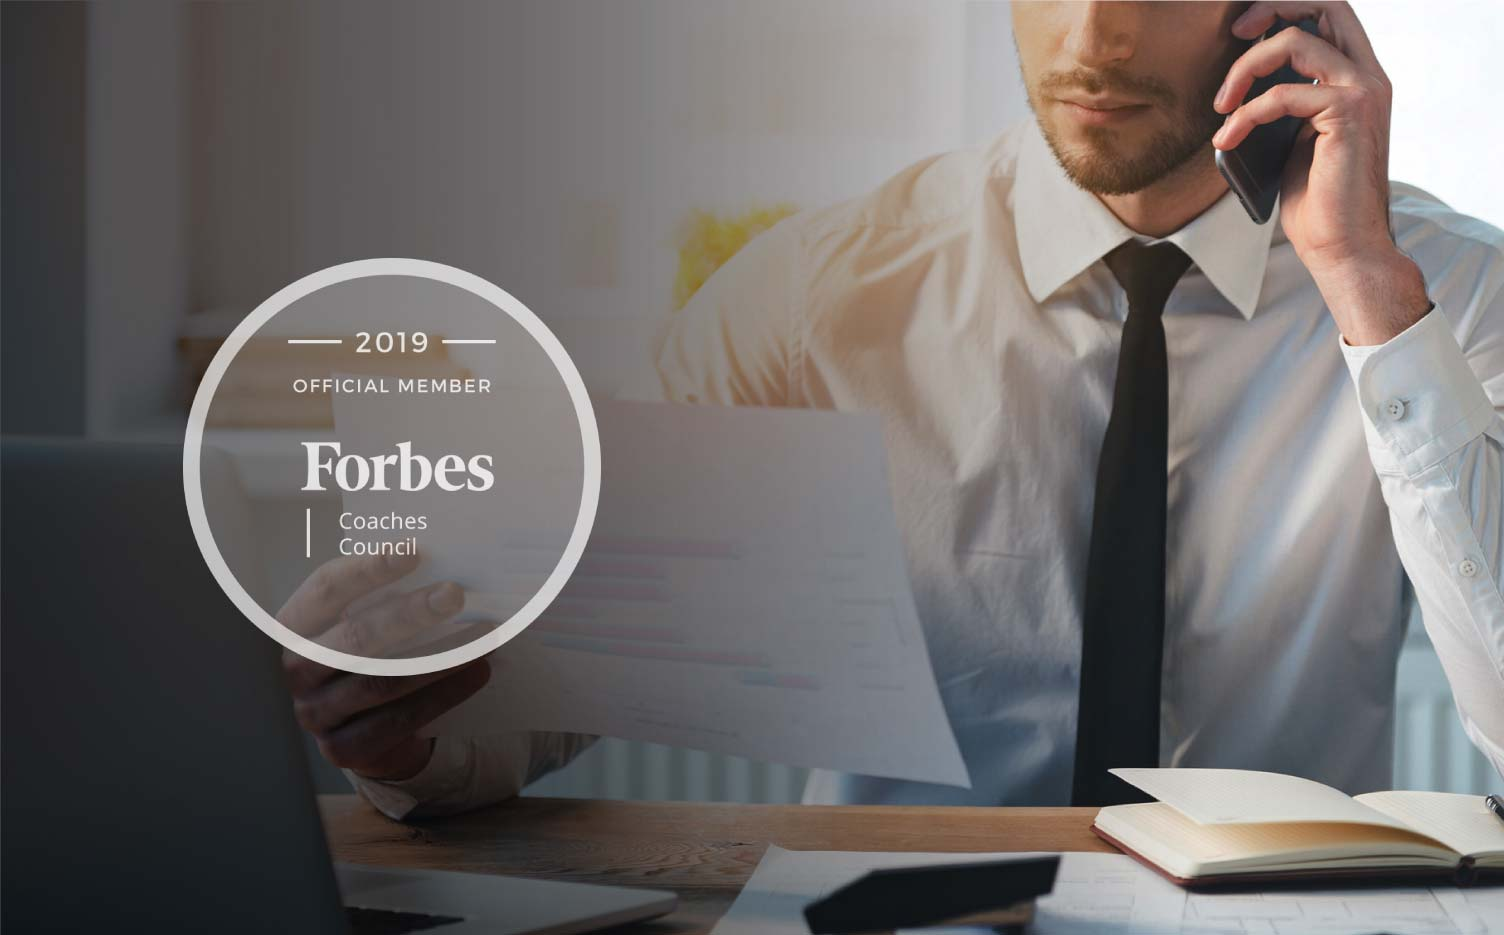 Jon Dwoskin's Forbes Coaches Council Article: Seven Practices For Growing Your Business, People And Soul